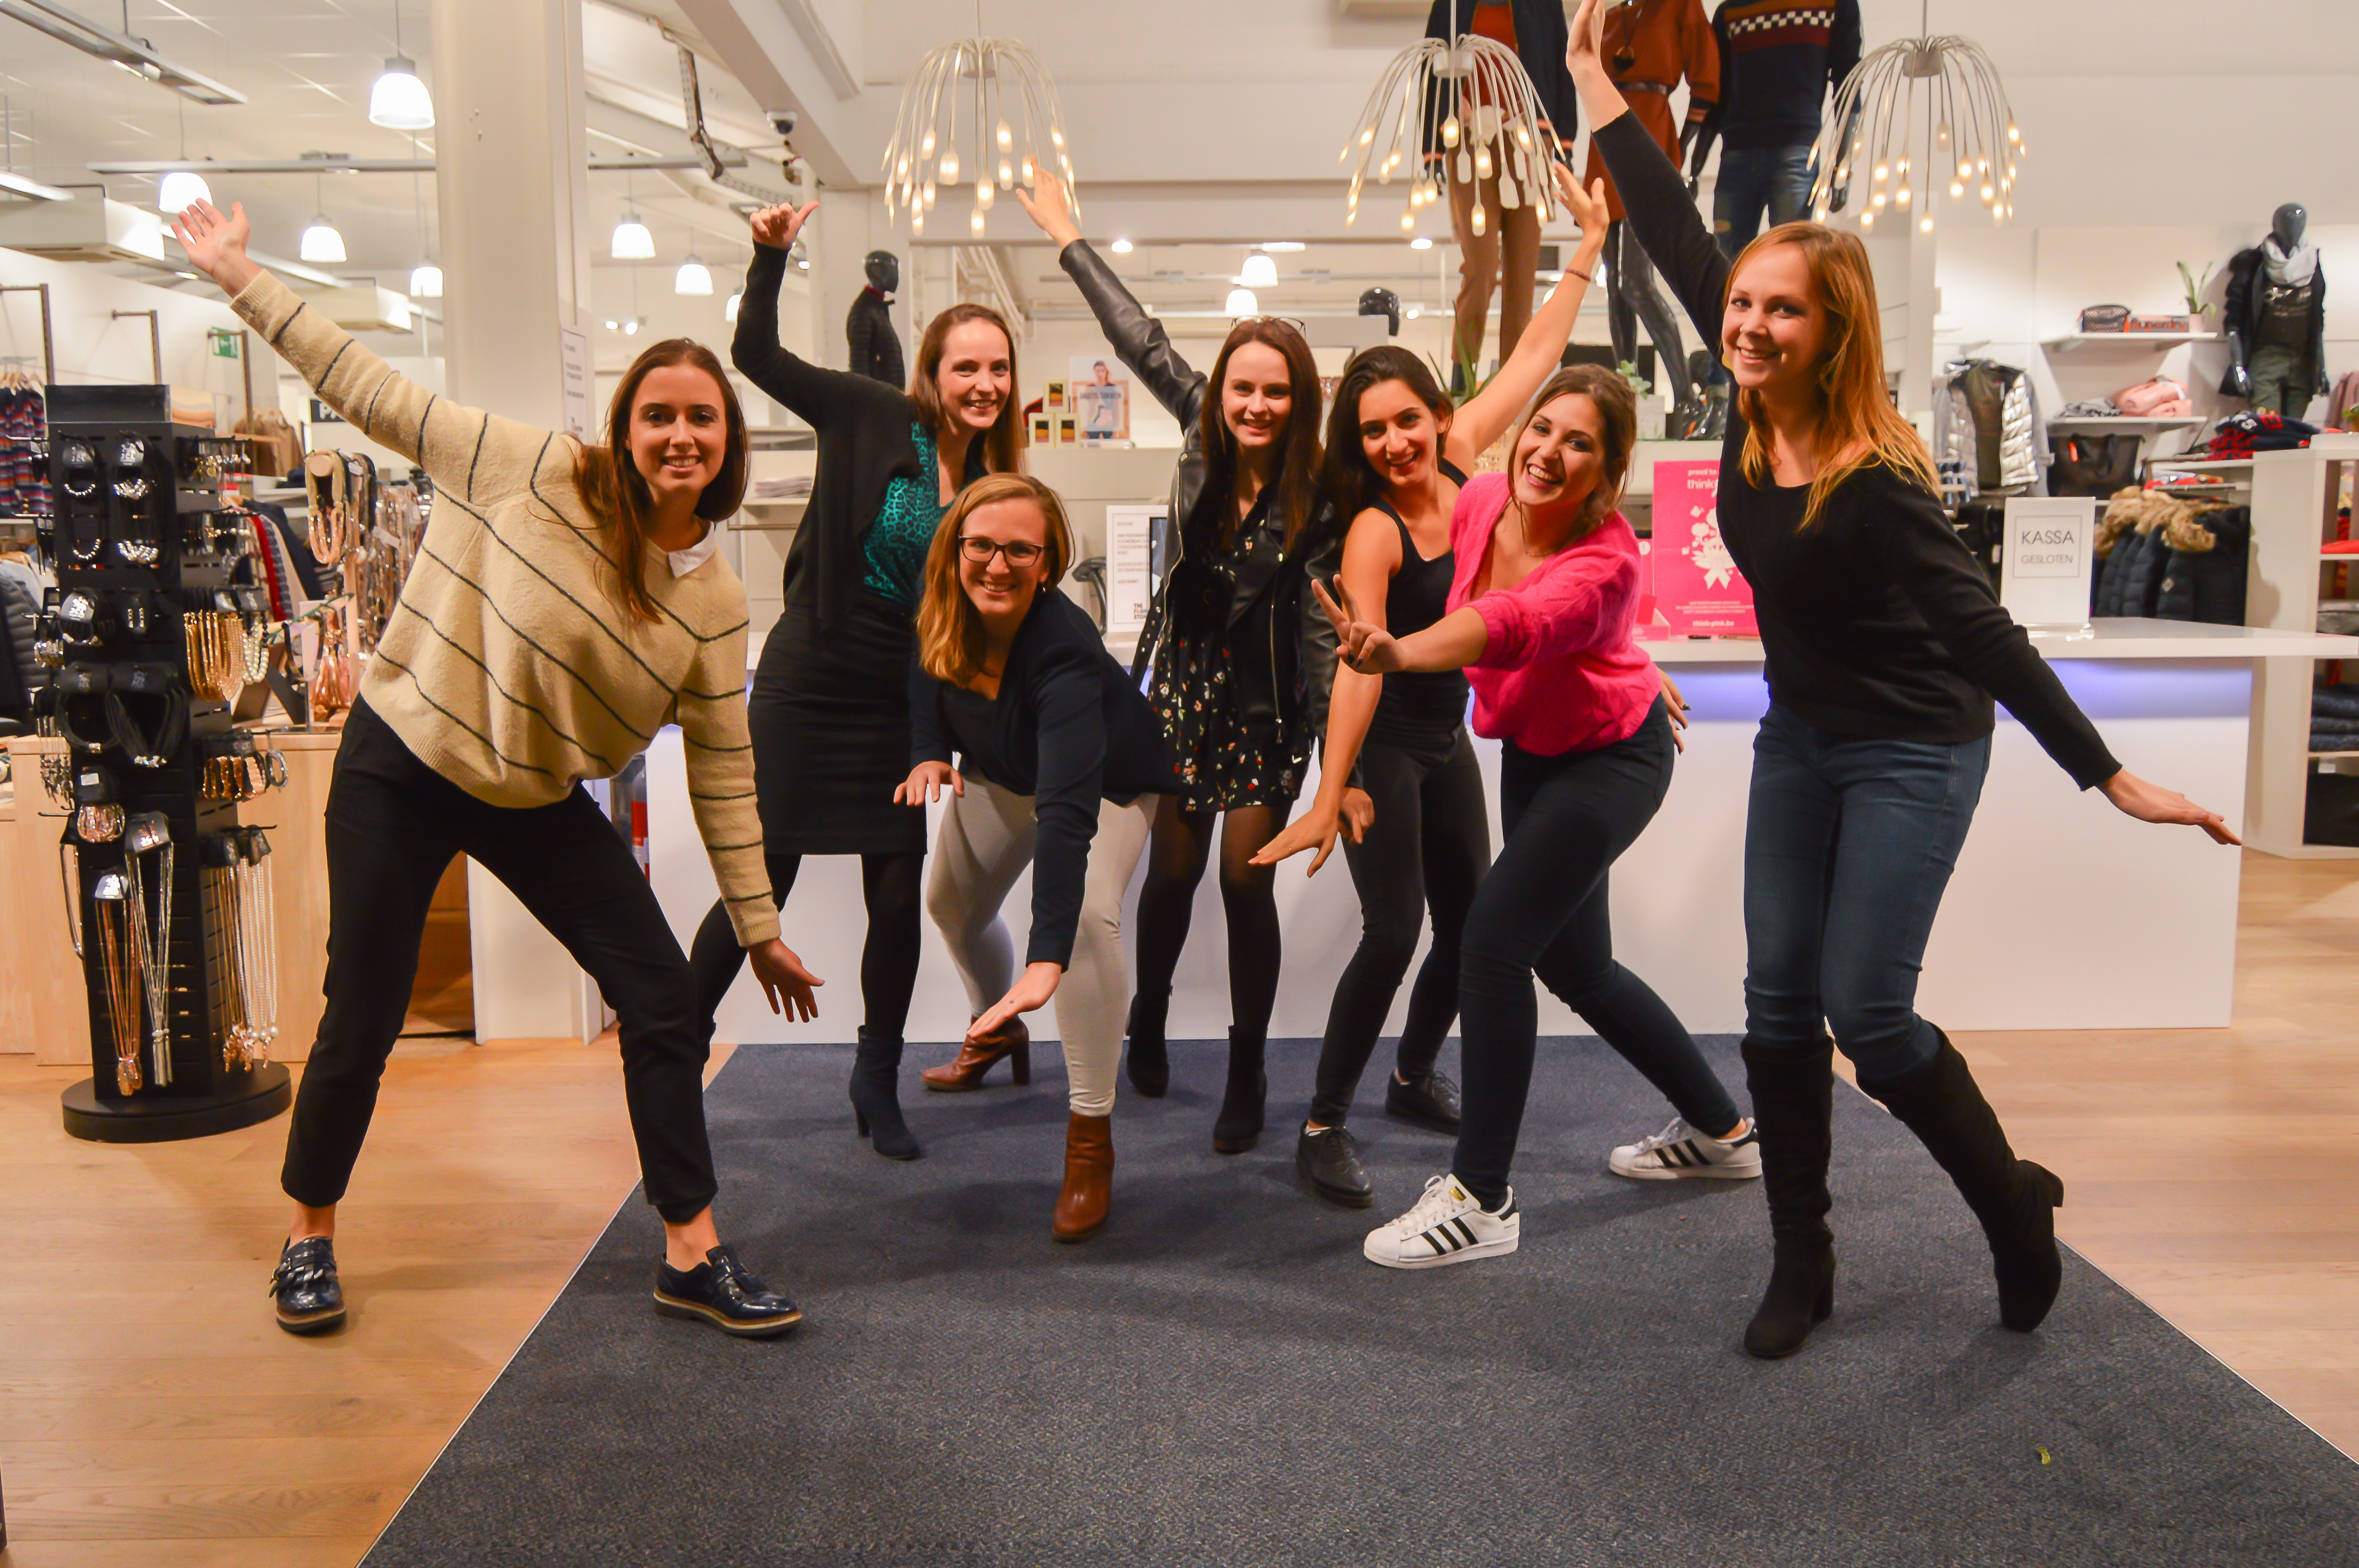 Business Styling Kledingadvies Stijladvies Workshop Kleur en stijl Imagoadvies Teambuilding